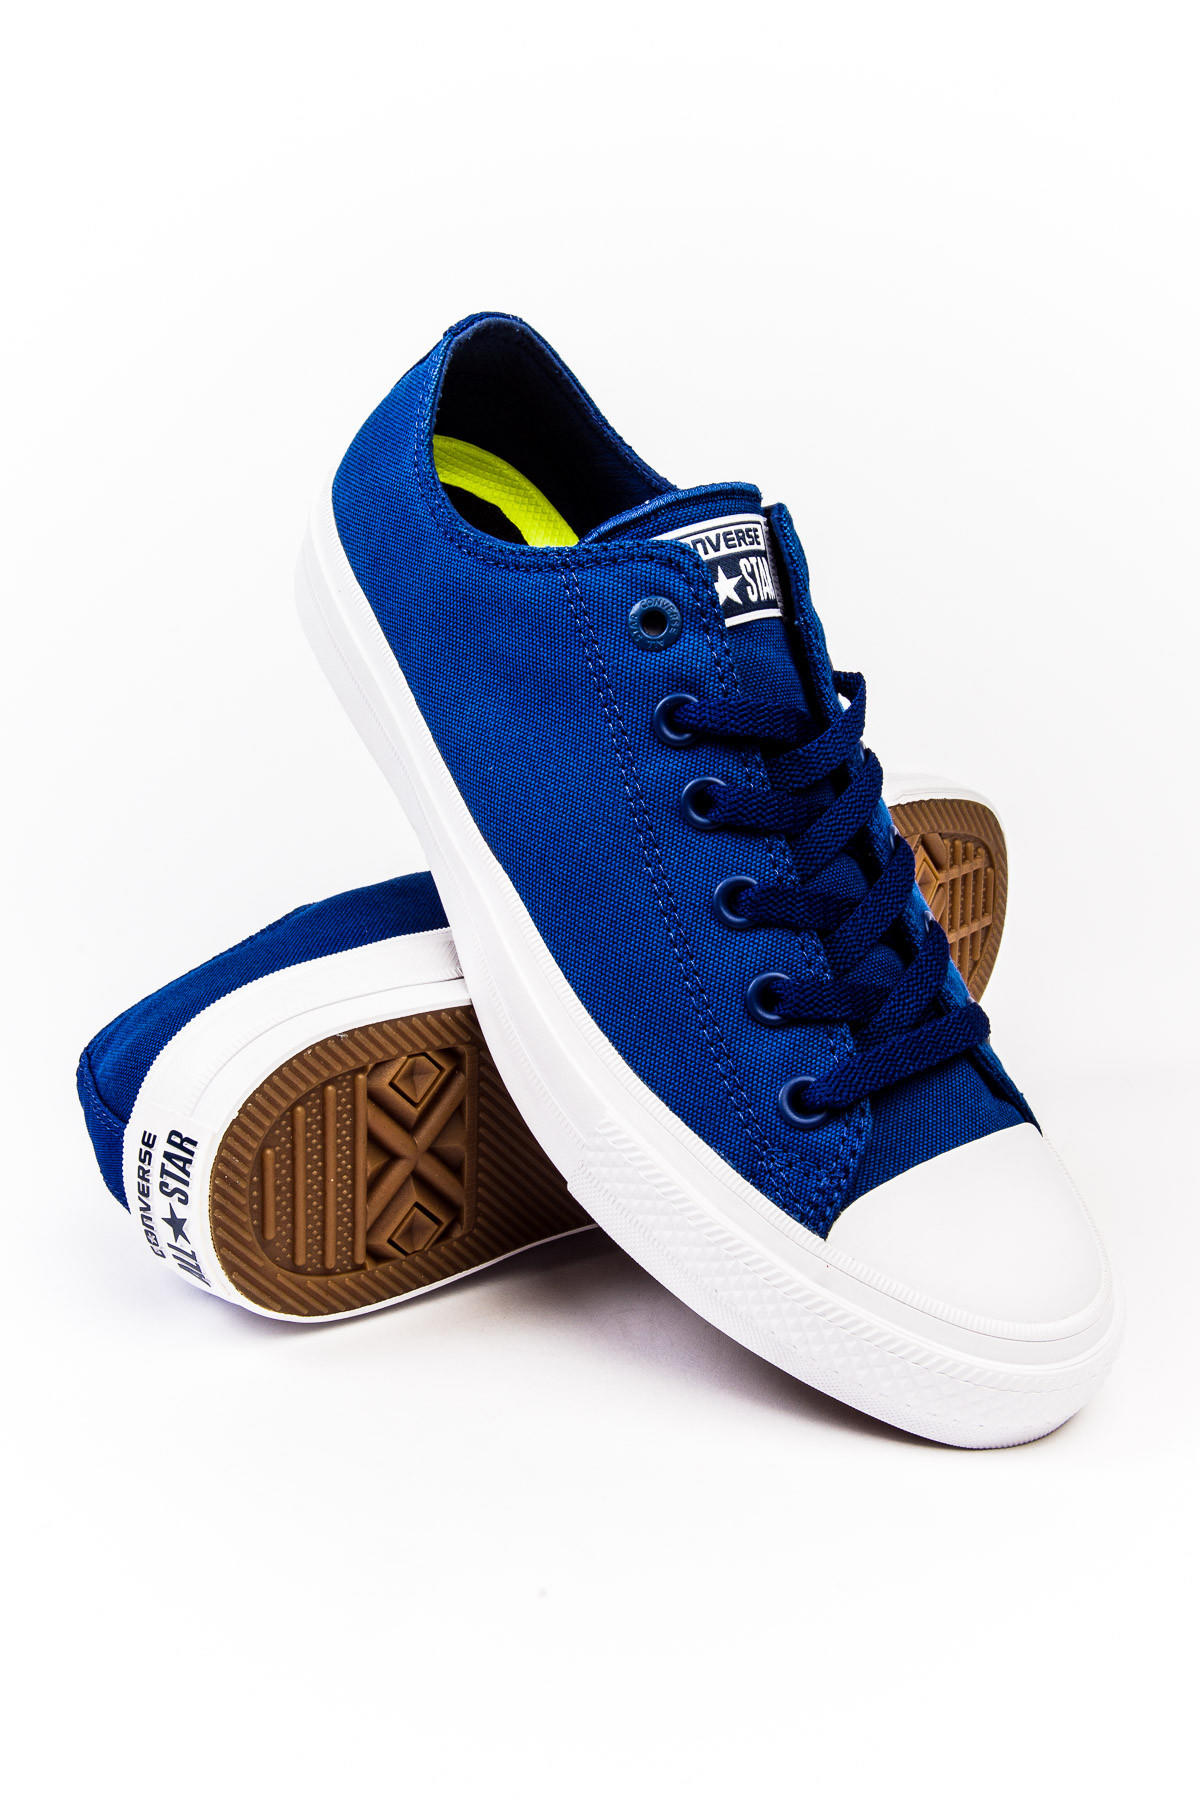 Converse Chuck Taylor All Star II Blue Ox Sneaker